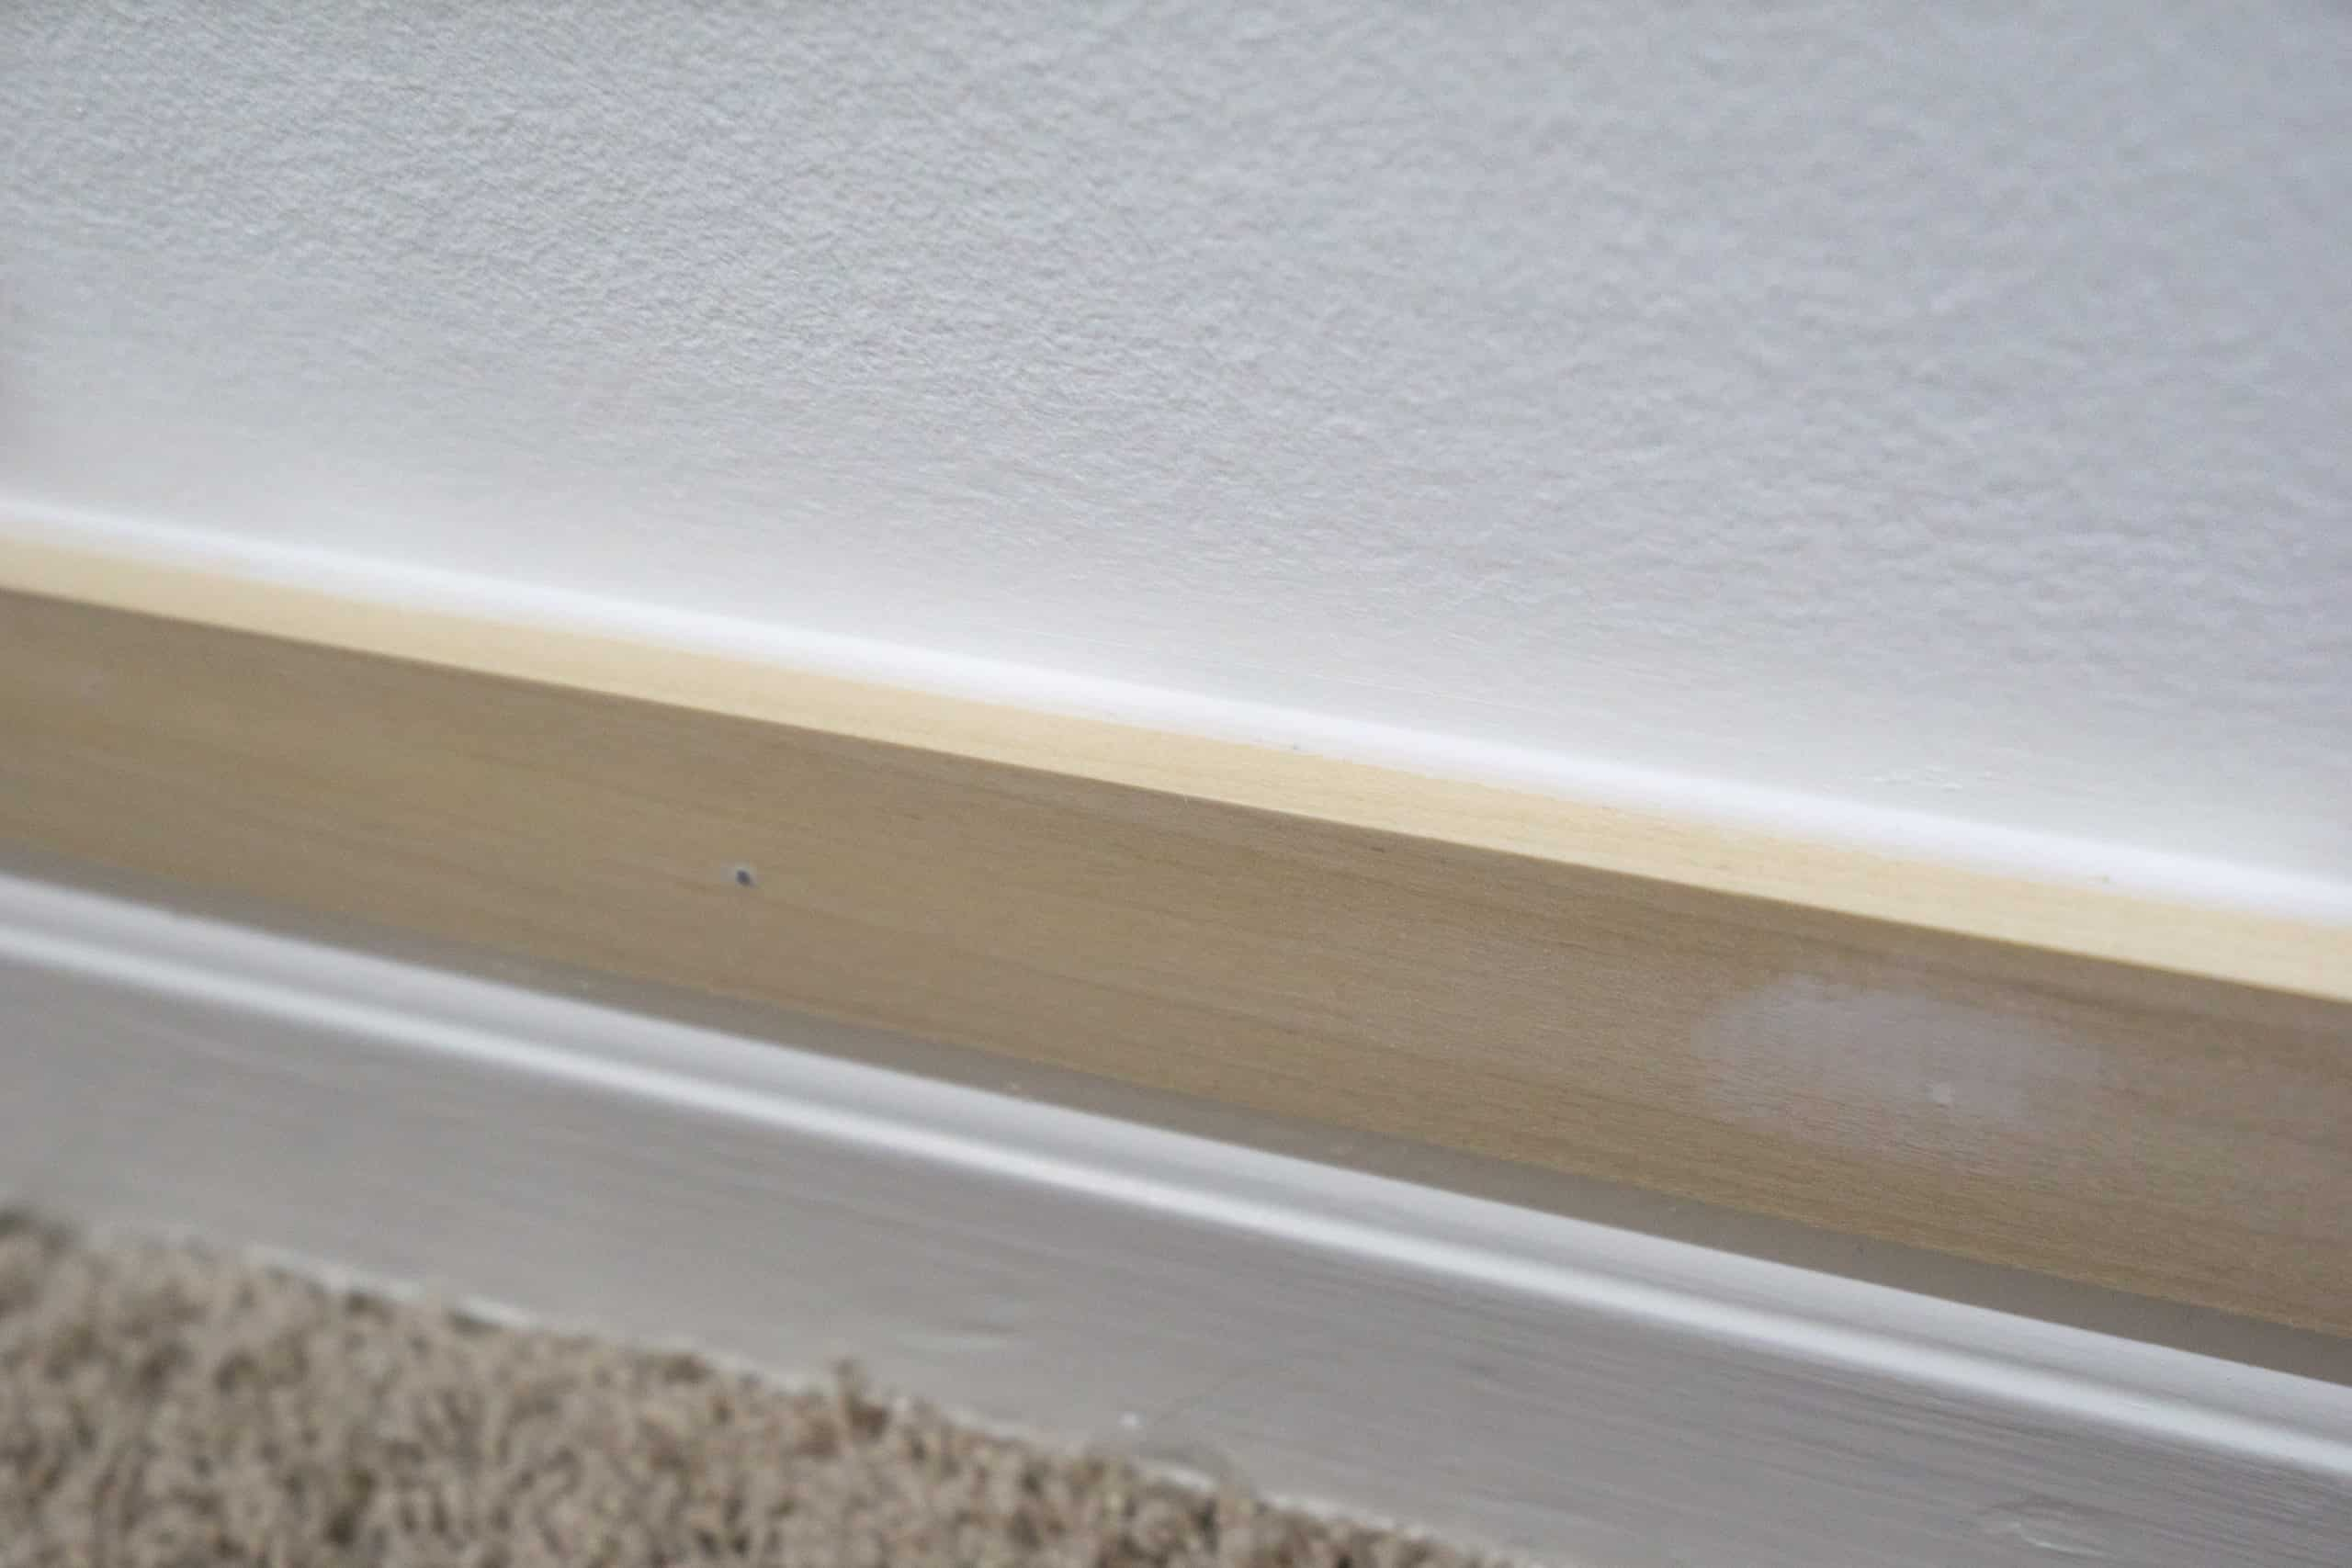 Accent walls can quickly elevate thestyle of any room. Let me show you how to easily install a wood trimaccent wall.